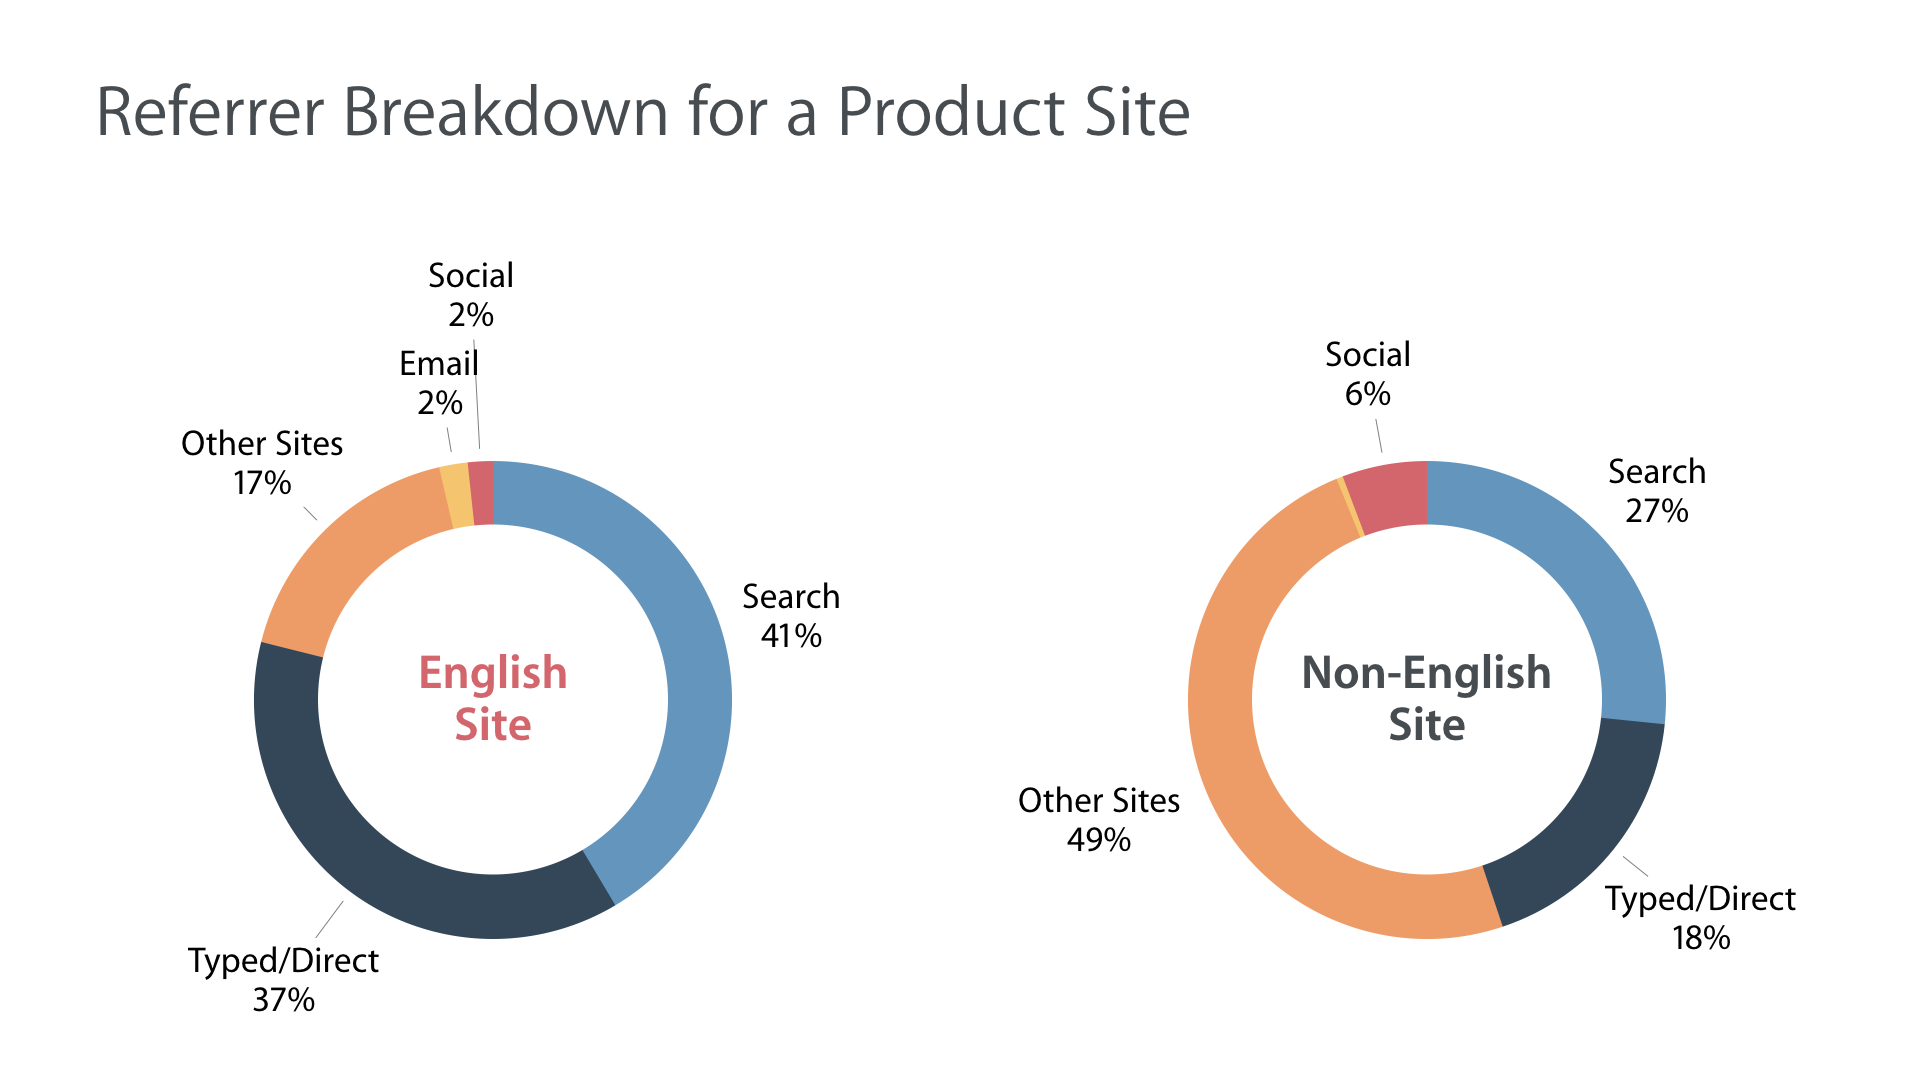 Two pie charts representing visits to English Site and to non-English site. The English site generated 41% traffic from search, whereas the non-English site generated 27% from search. Majority of users from the non-English site are arriving via other sites, such as blogs and news to visit the site.